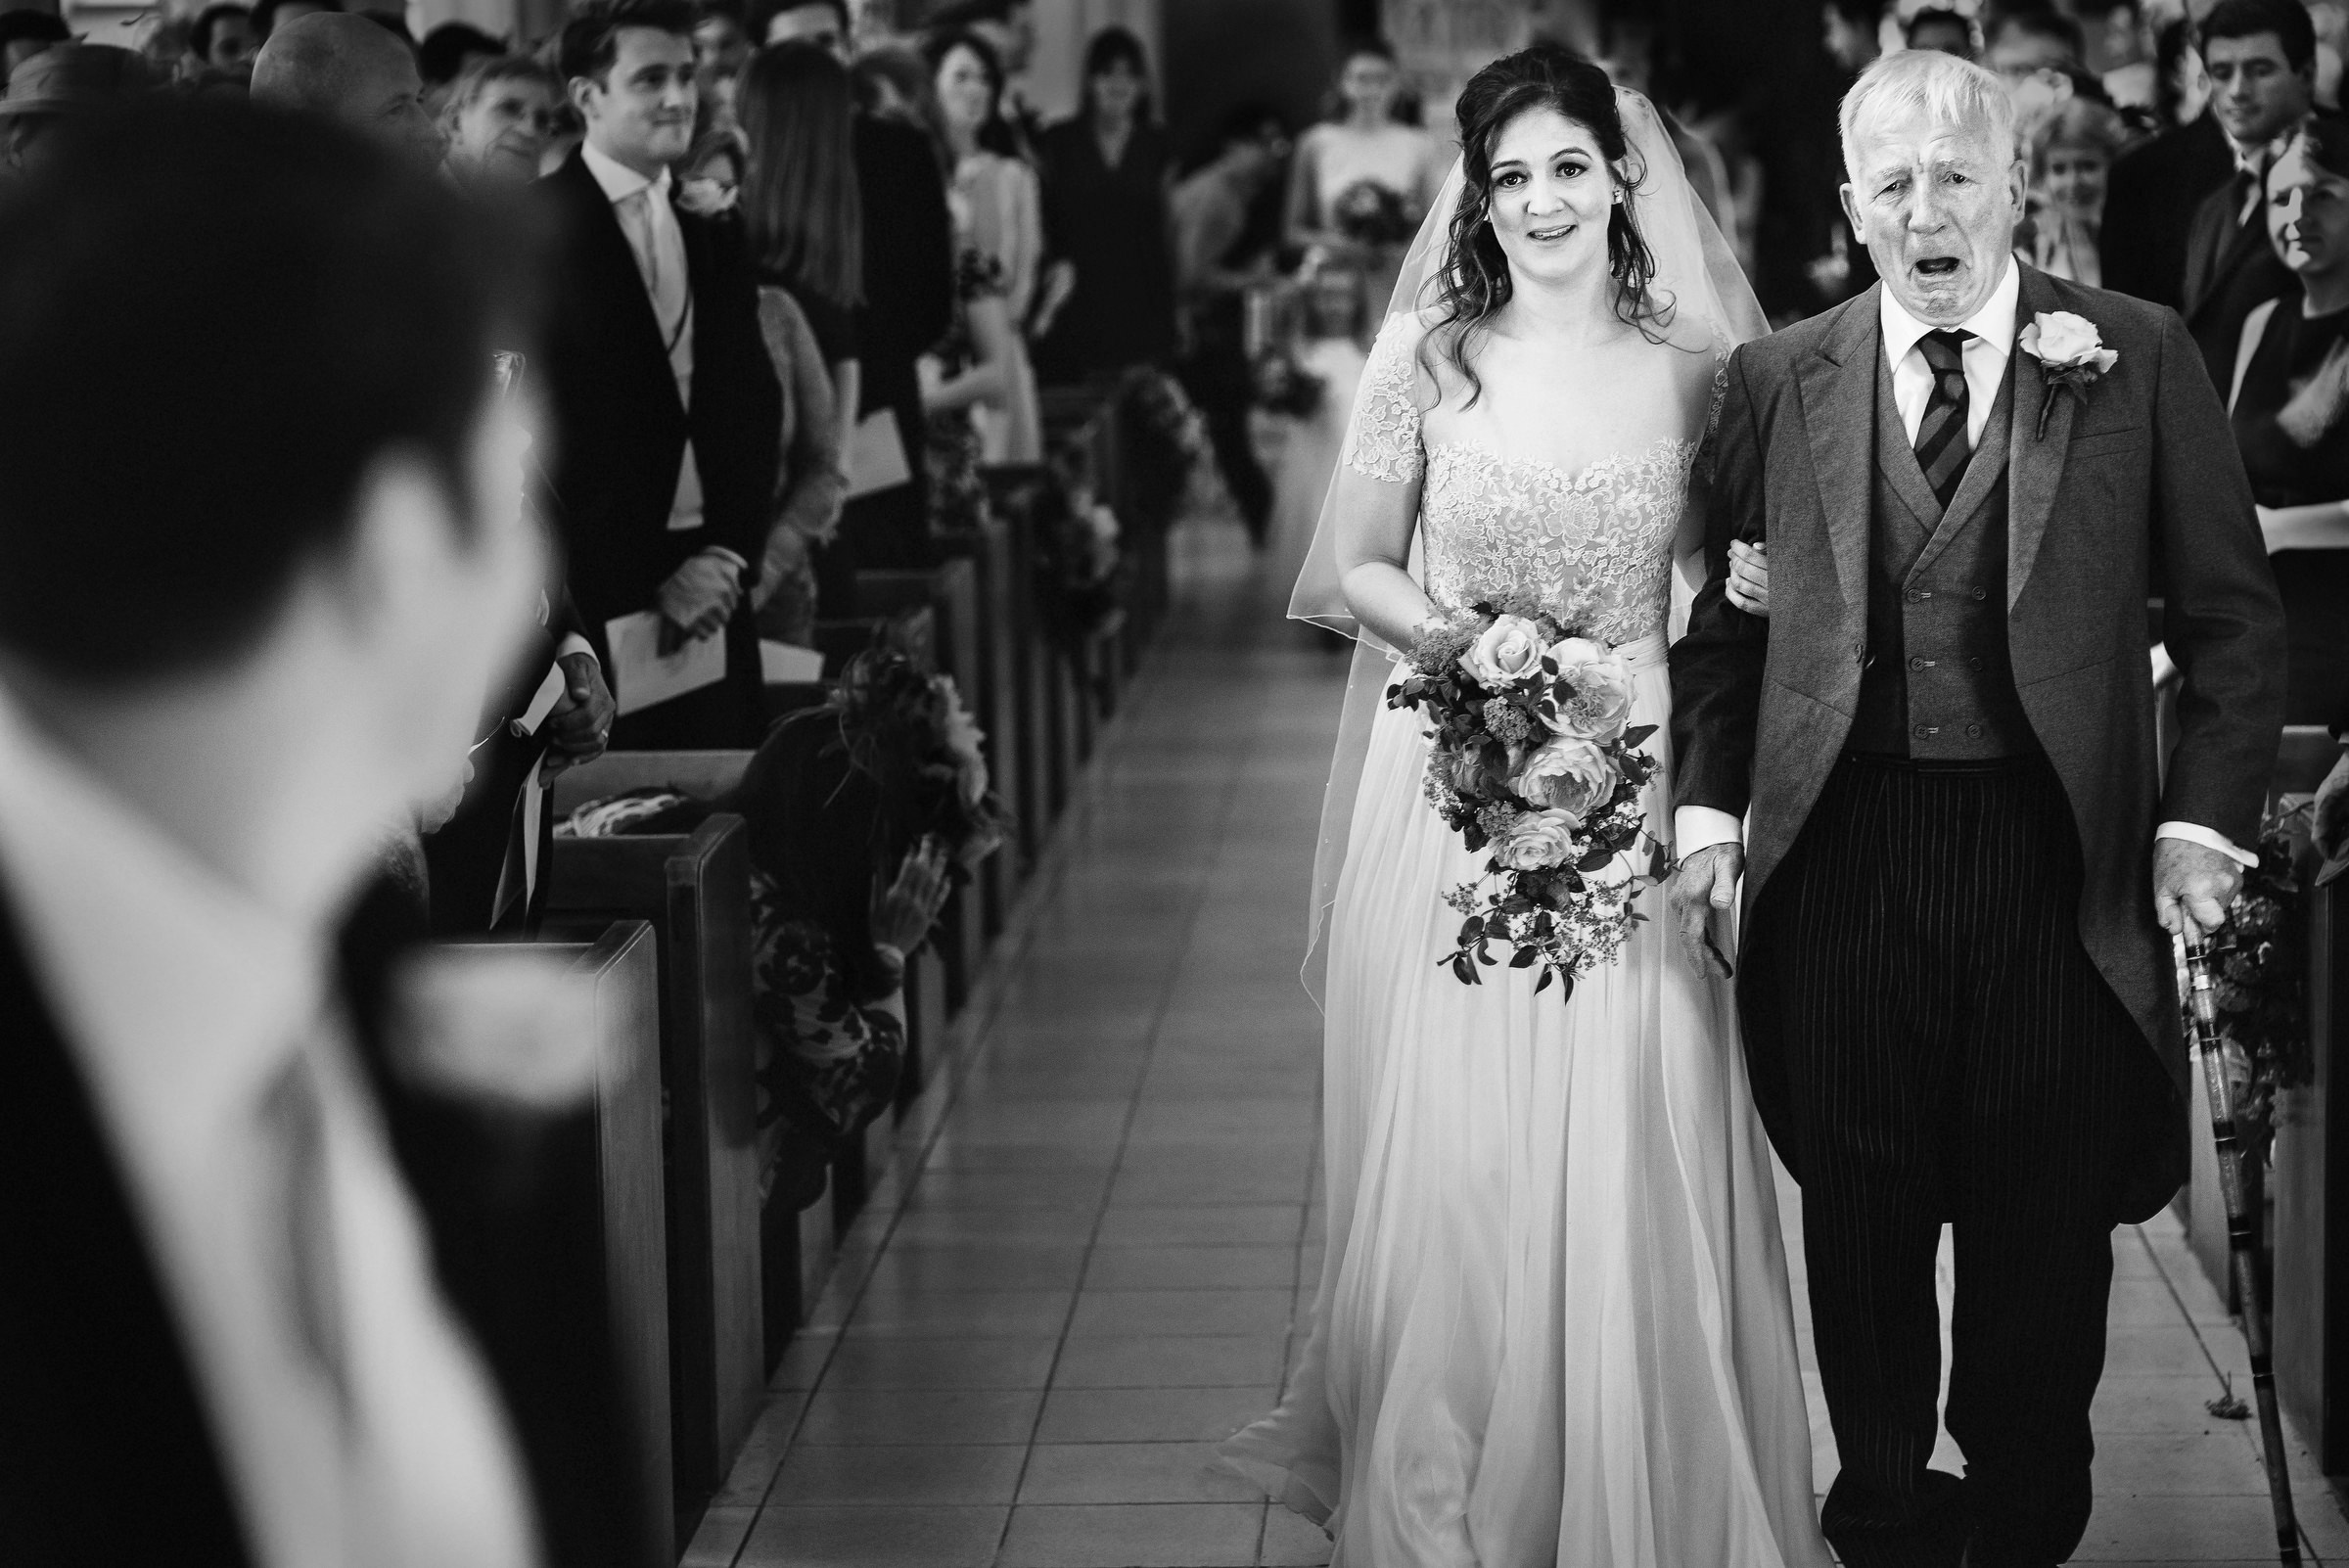 Bride walks up aisle with grandpa - photo by Andy Gaines Photography